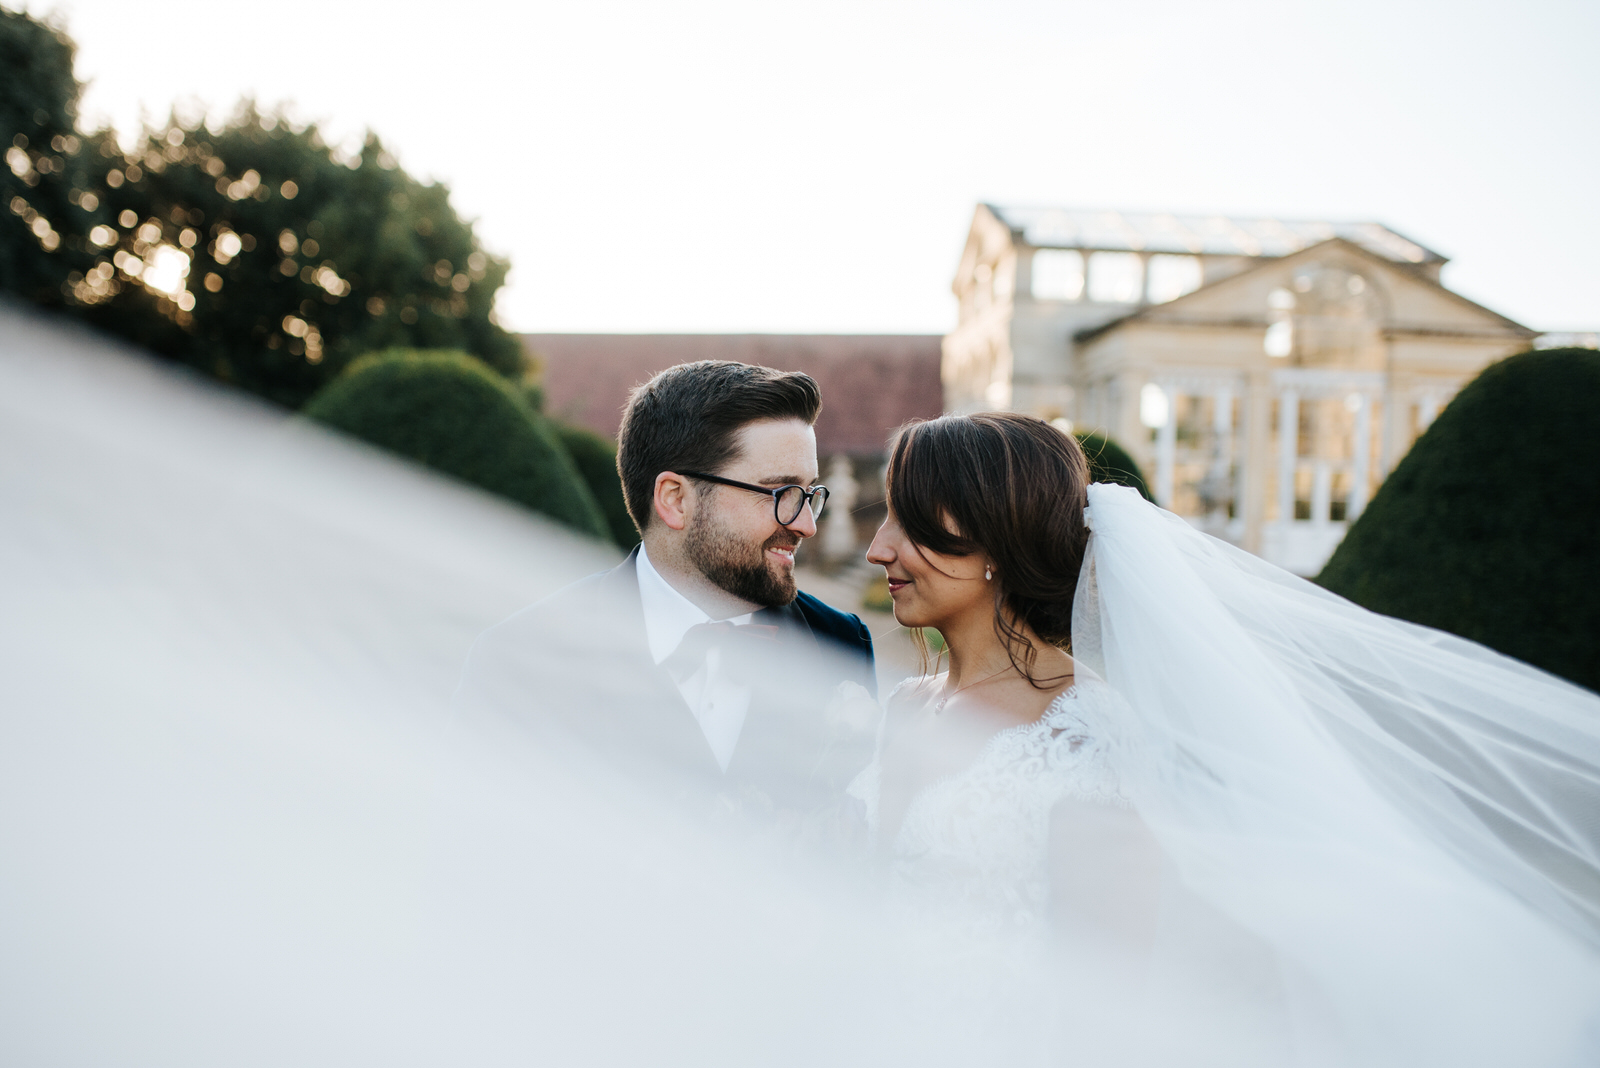 Romantic photo of bride and groom looking at each other while her veil floats in front of camera